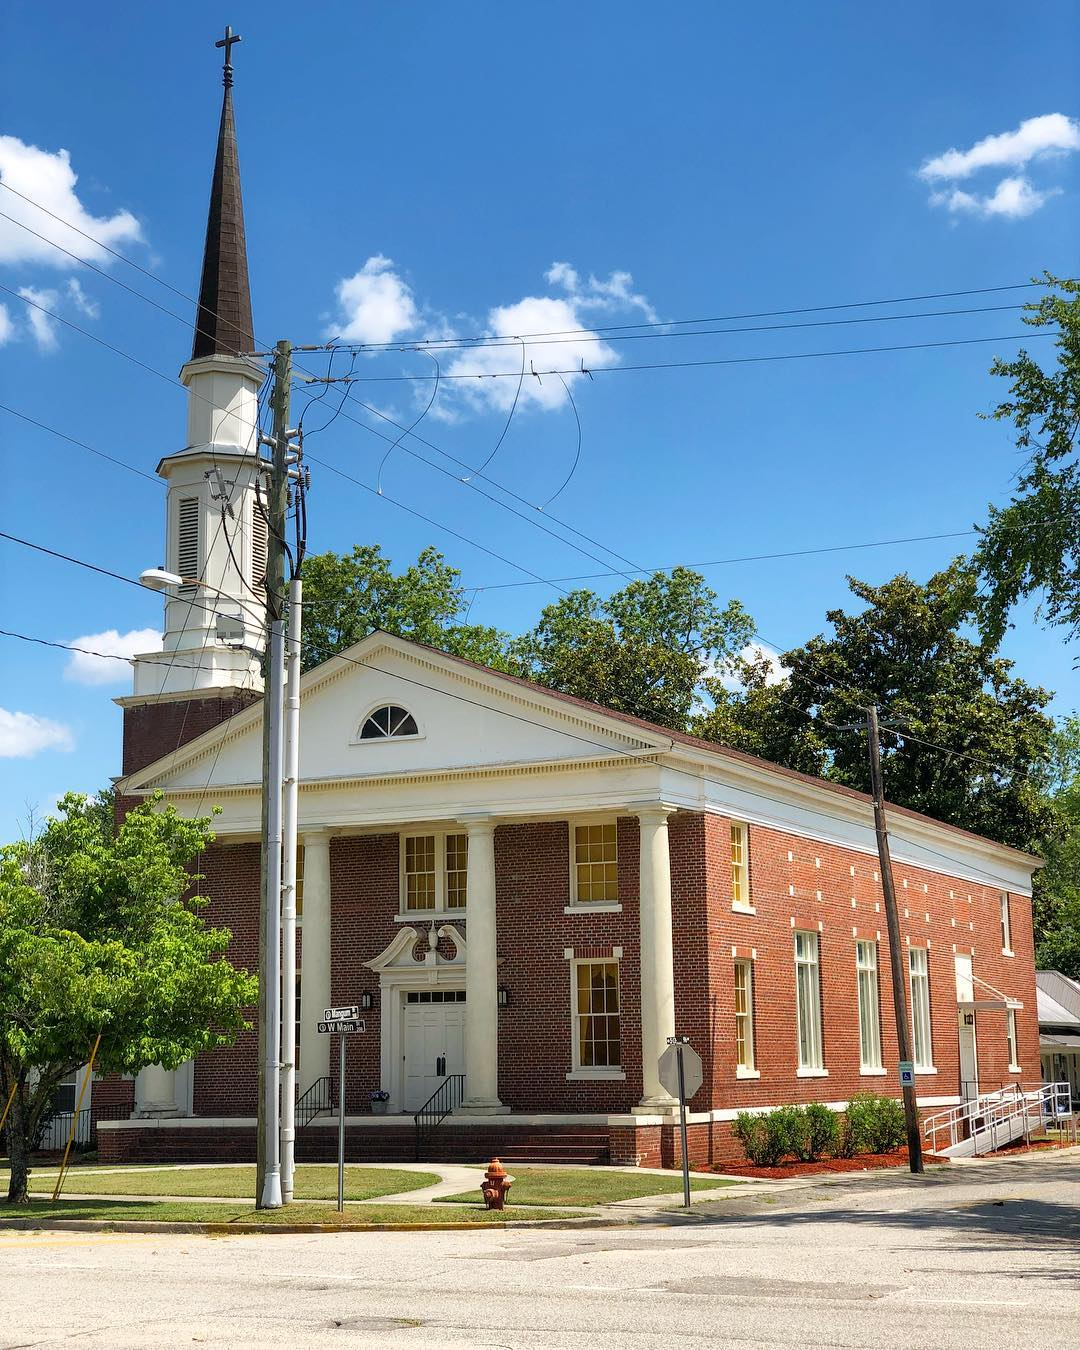 Established in 1908. The history of the church originates in 1889 with nine members. In 1894 the church discontinued services, then reorganized in 1908 with 15 members